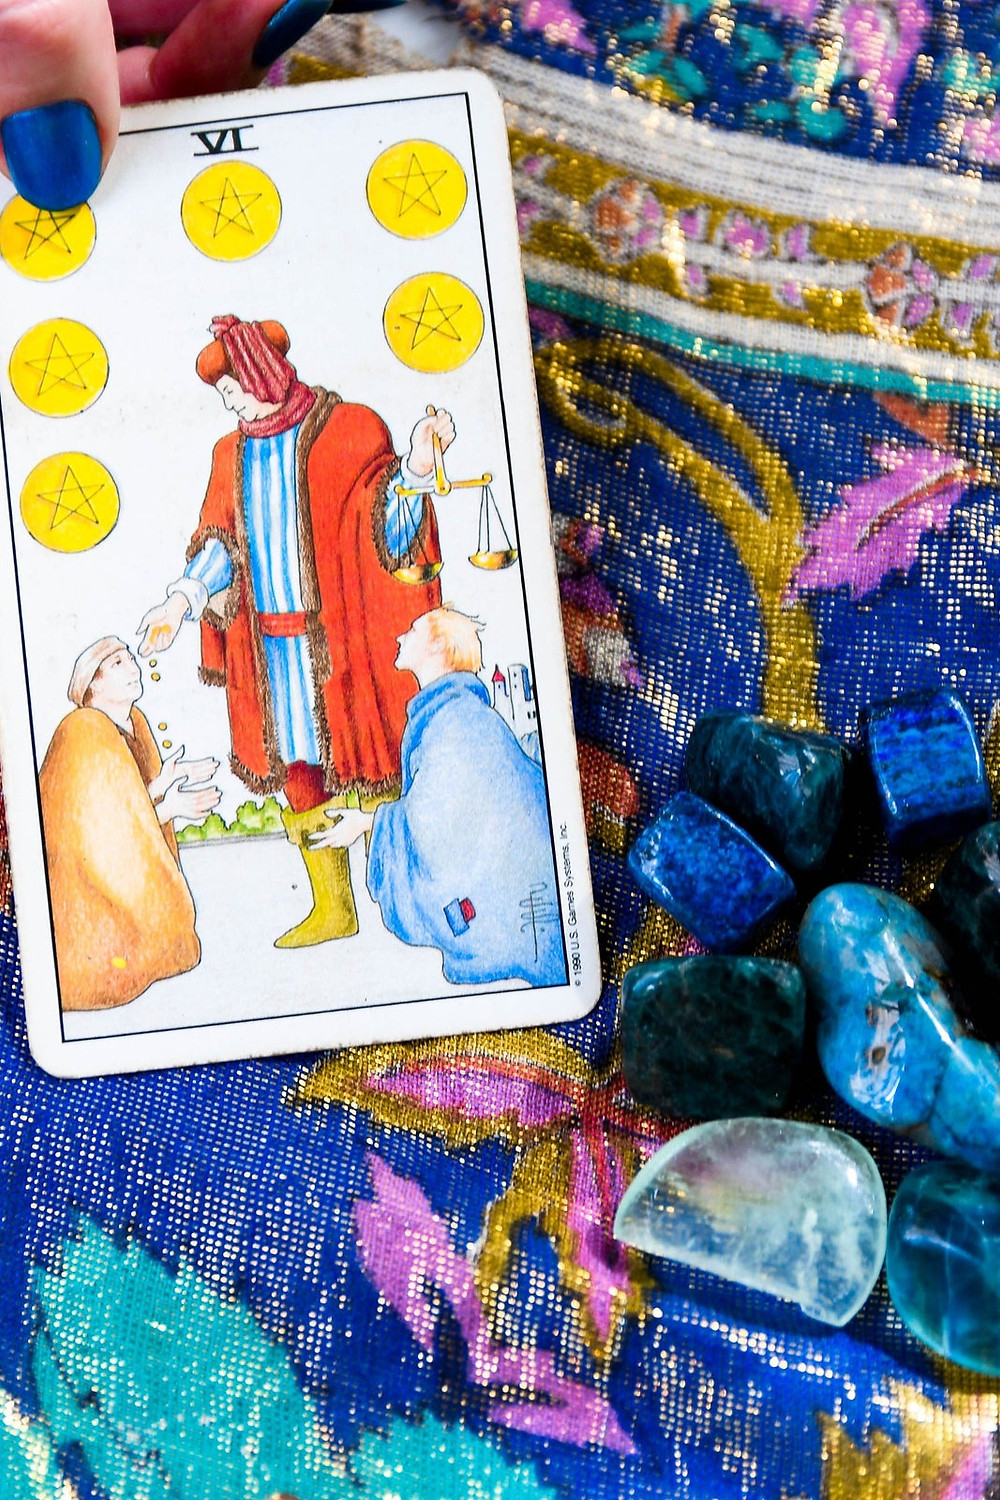 Tarot Reading with Mak Jagger online experience from Airbnb